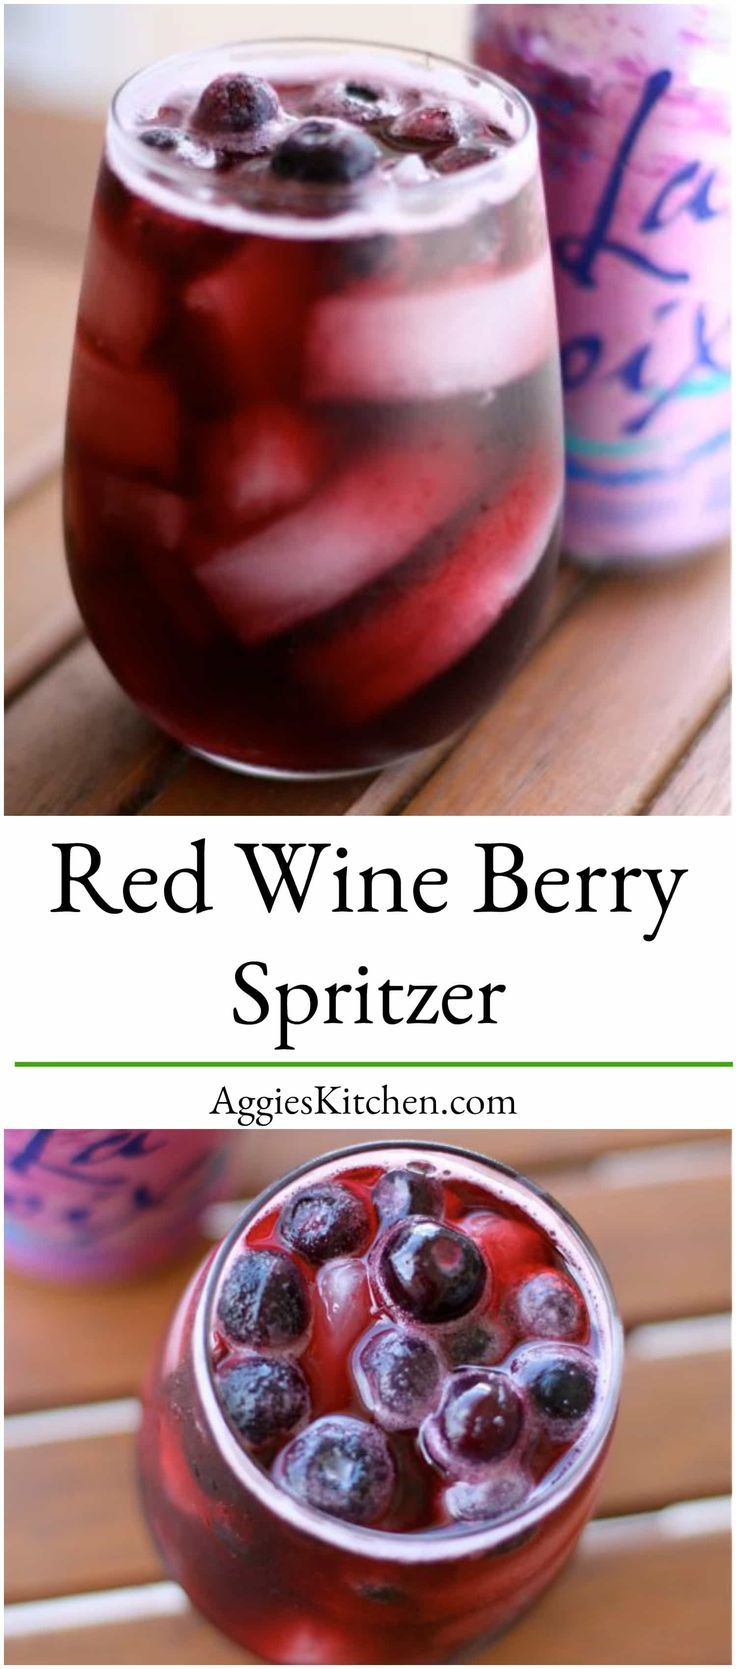 Red Wine Berry Spritzer Recipe Spritzer Recipes Spritzer Drink Wine Spritzer